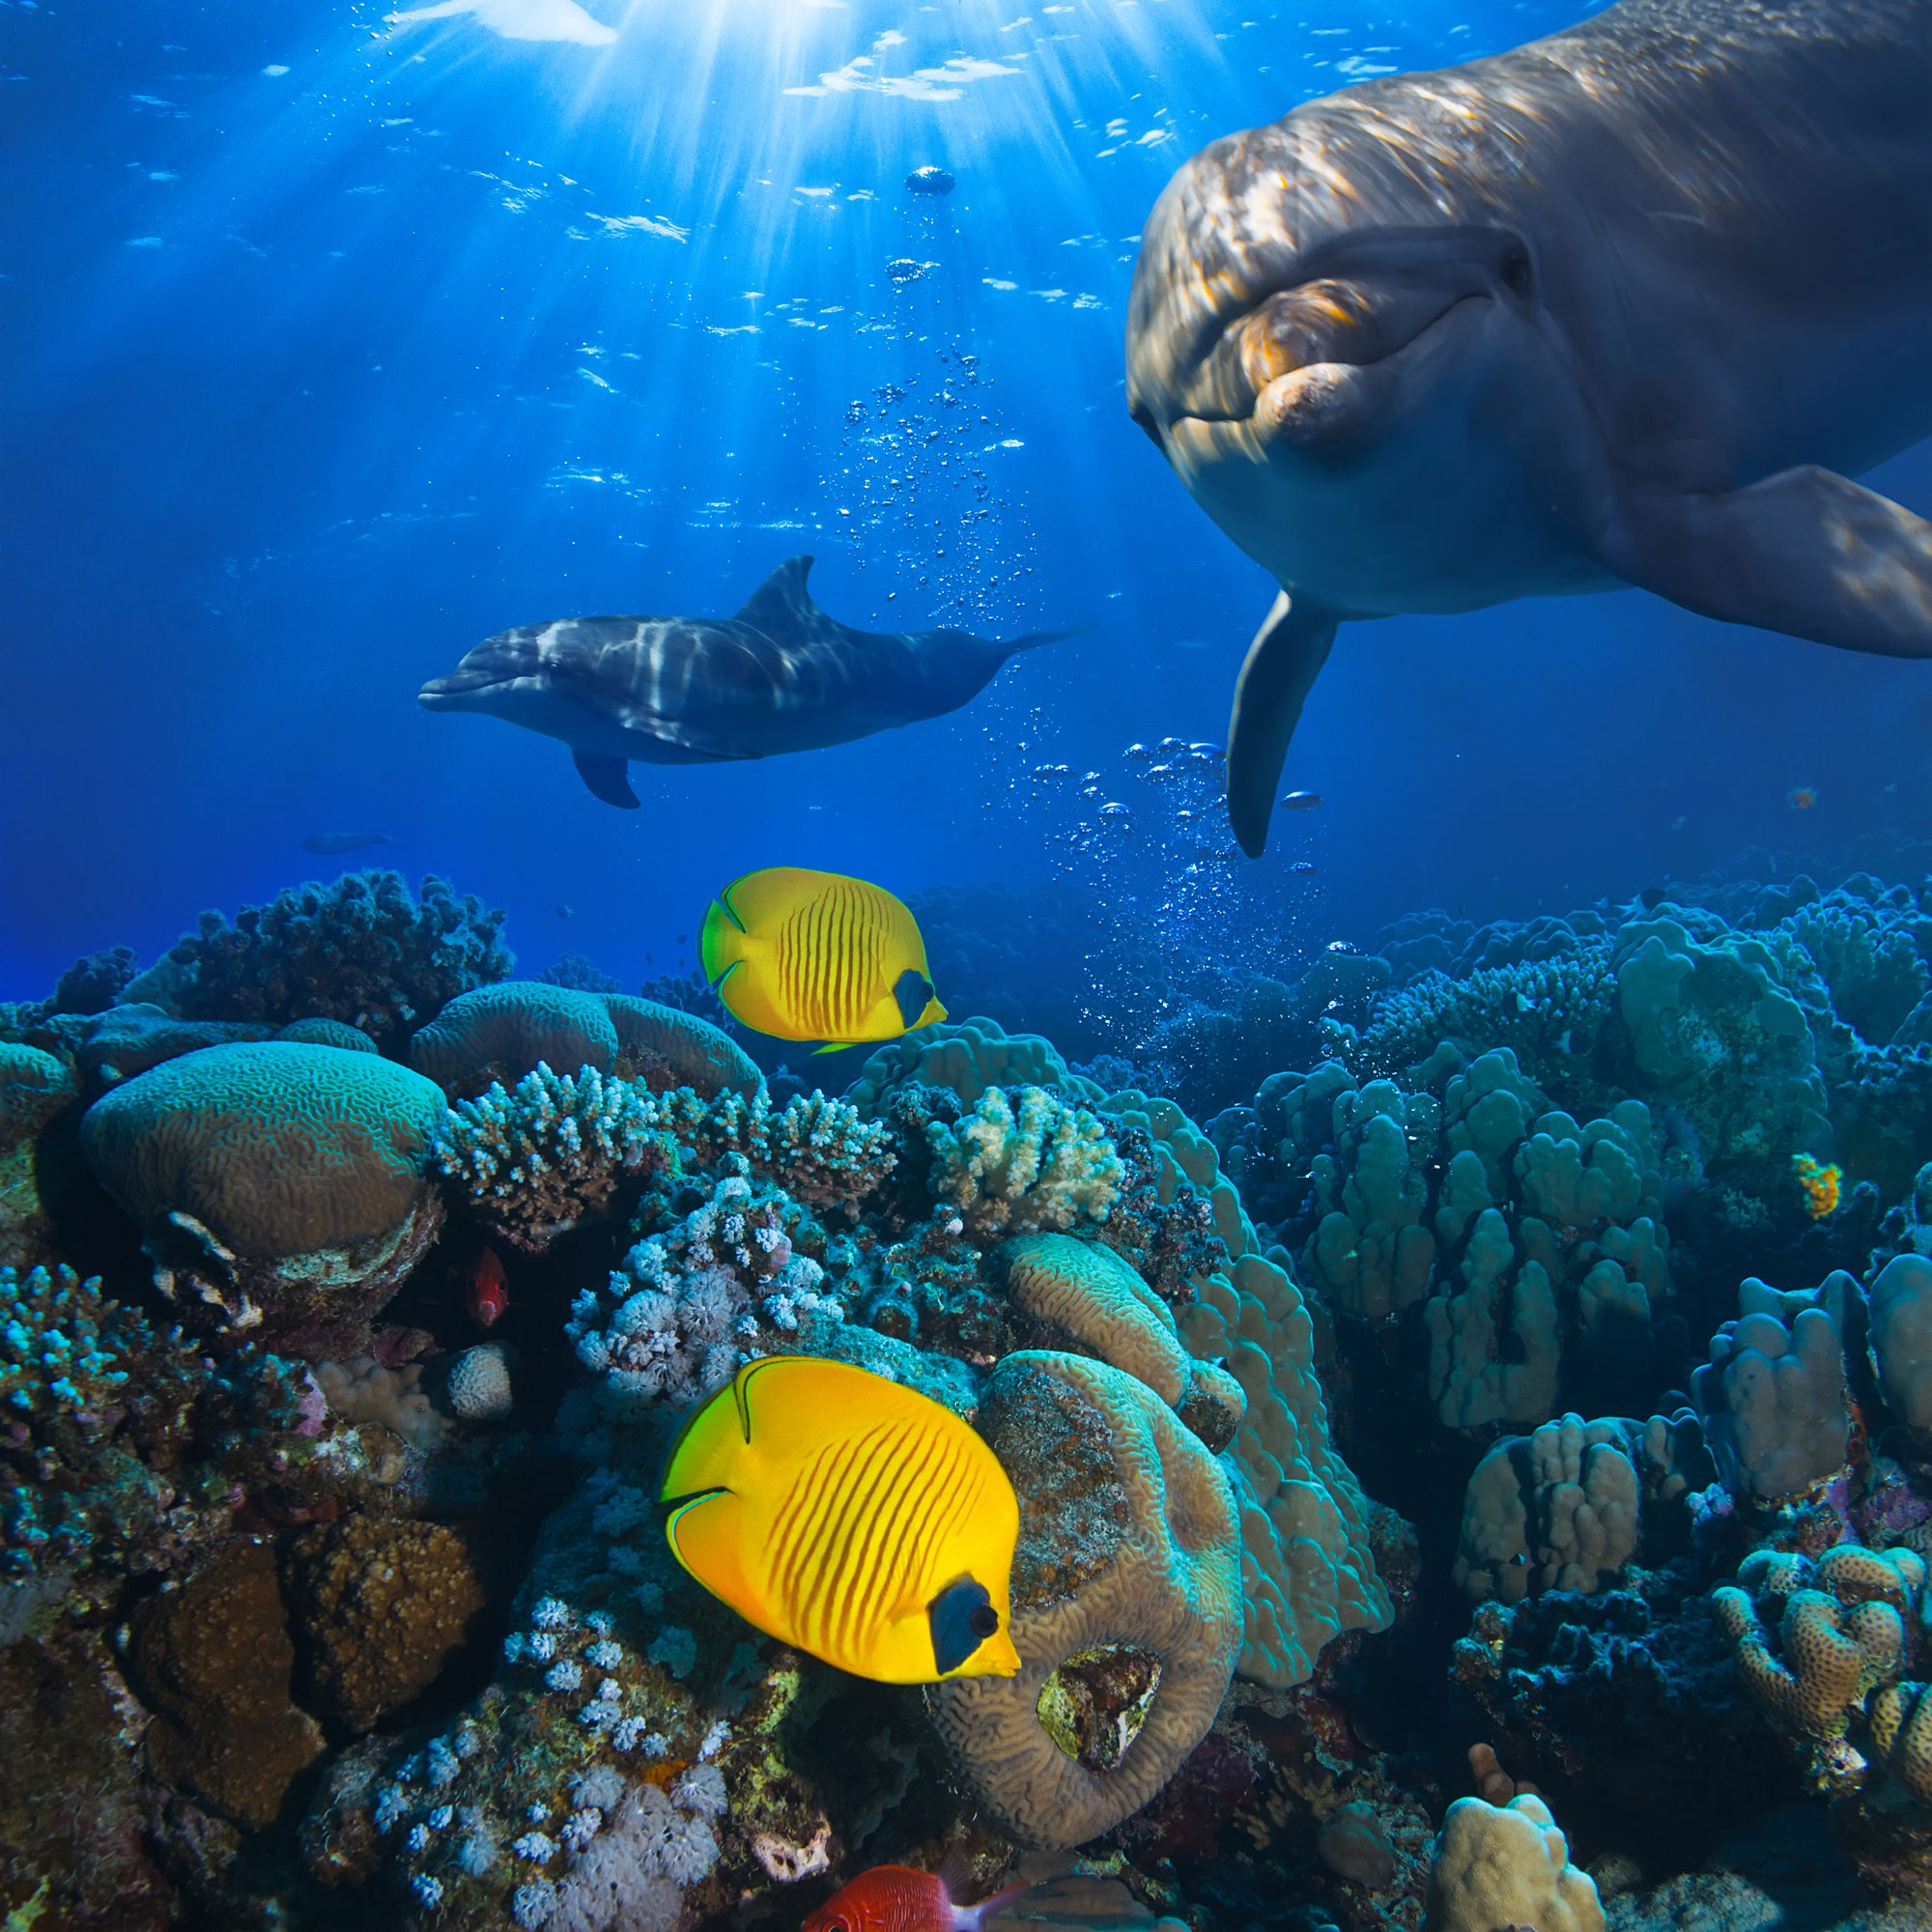 Dolphins and corals